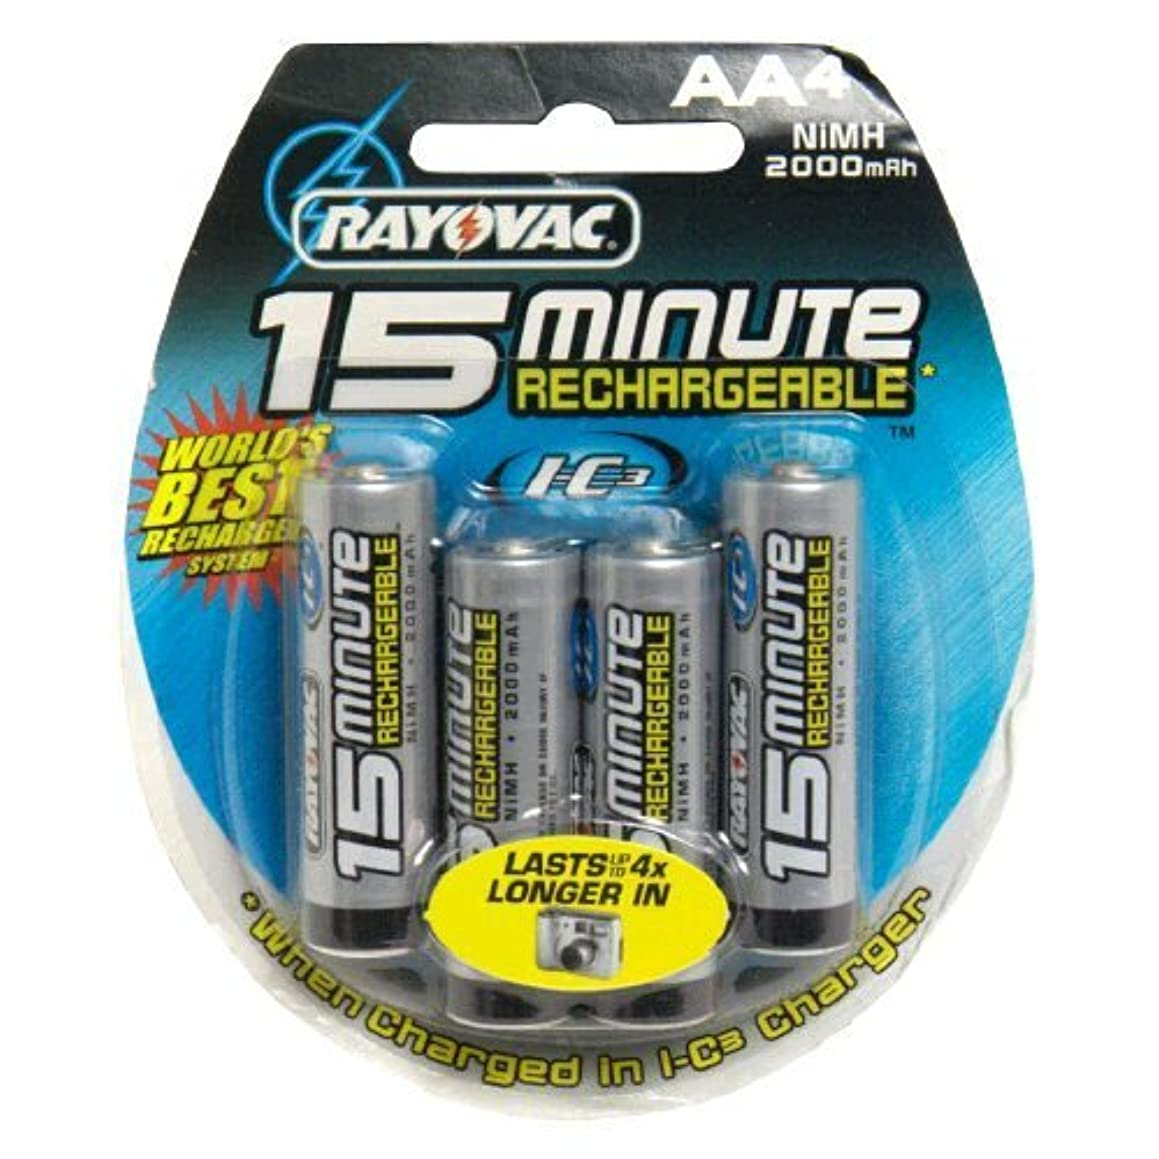 Rayovac I-C3 15 Minute Rechargeable Batteries, AA , 4 batteries (Discontinued by Manufacturer)